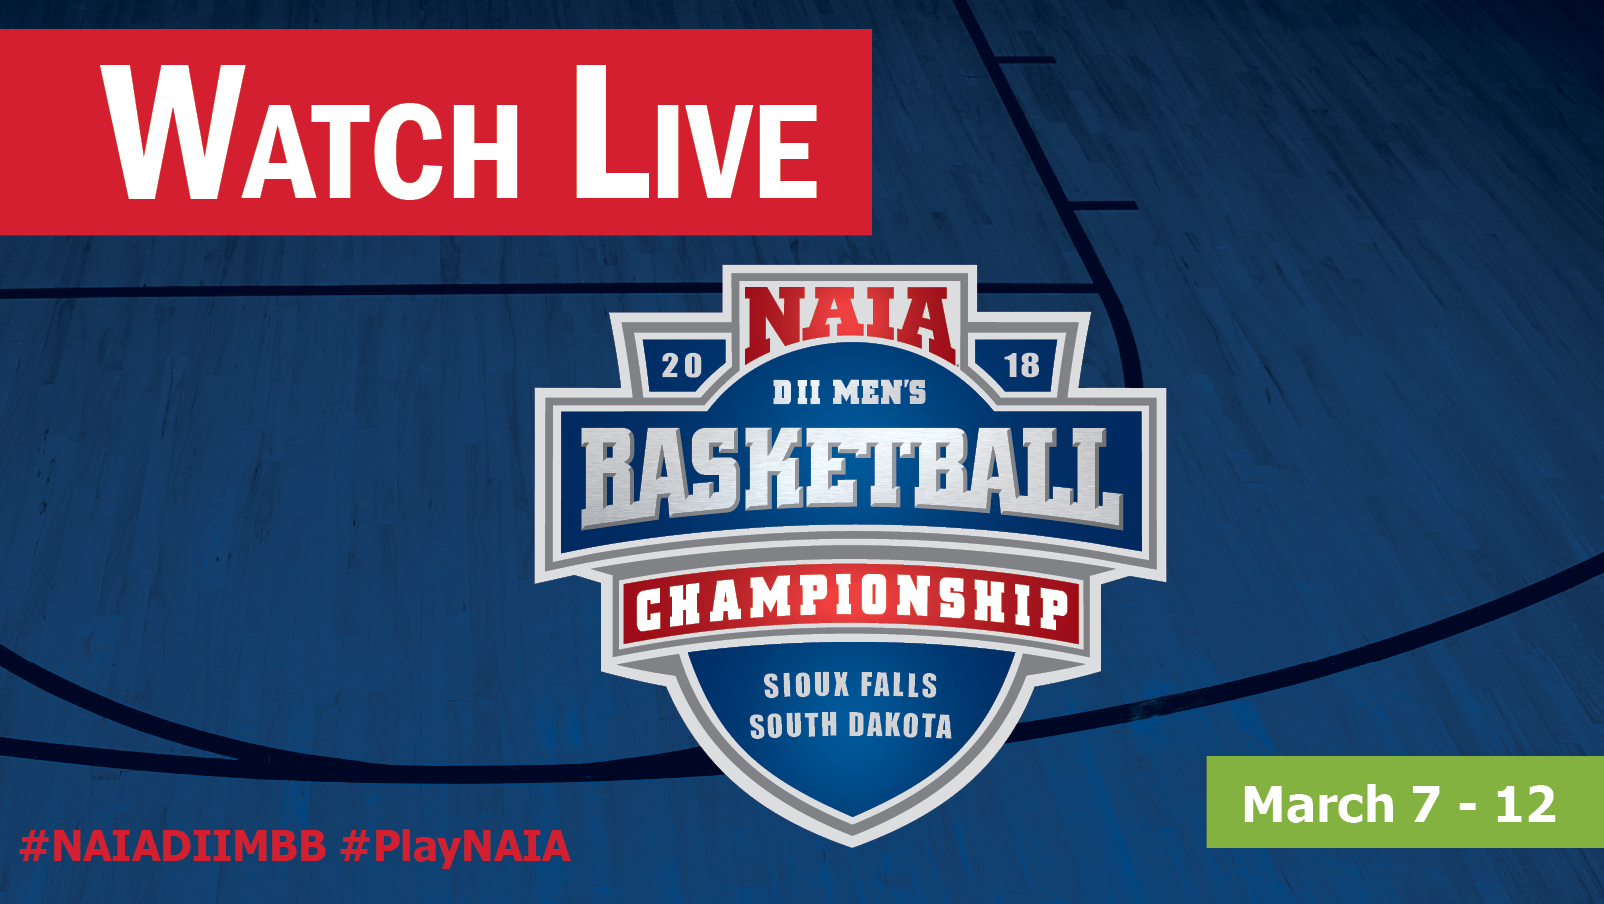 DII Men's Basketball Championship